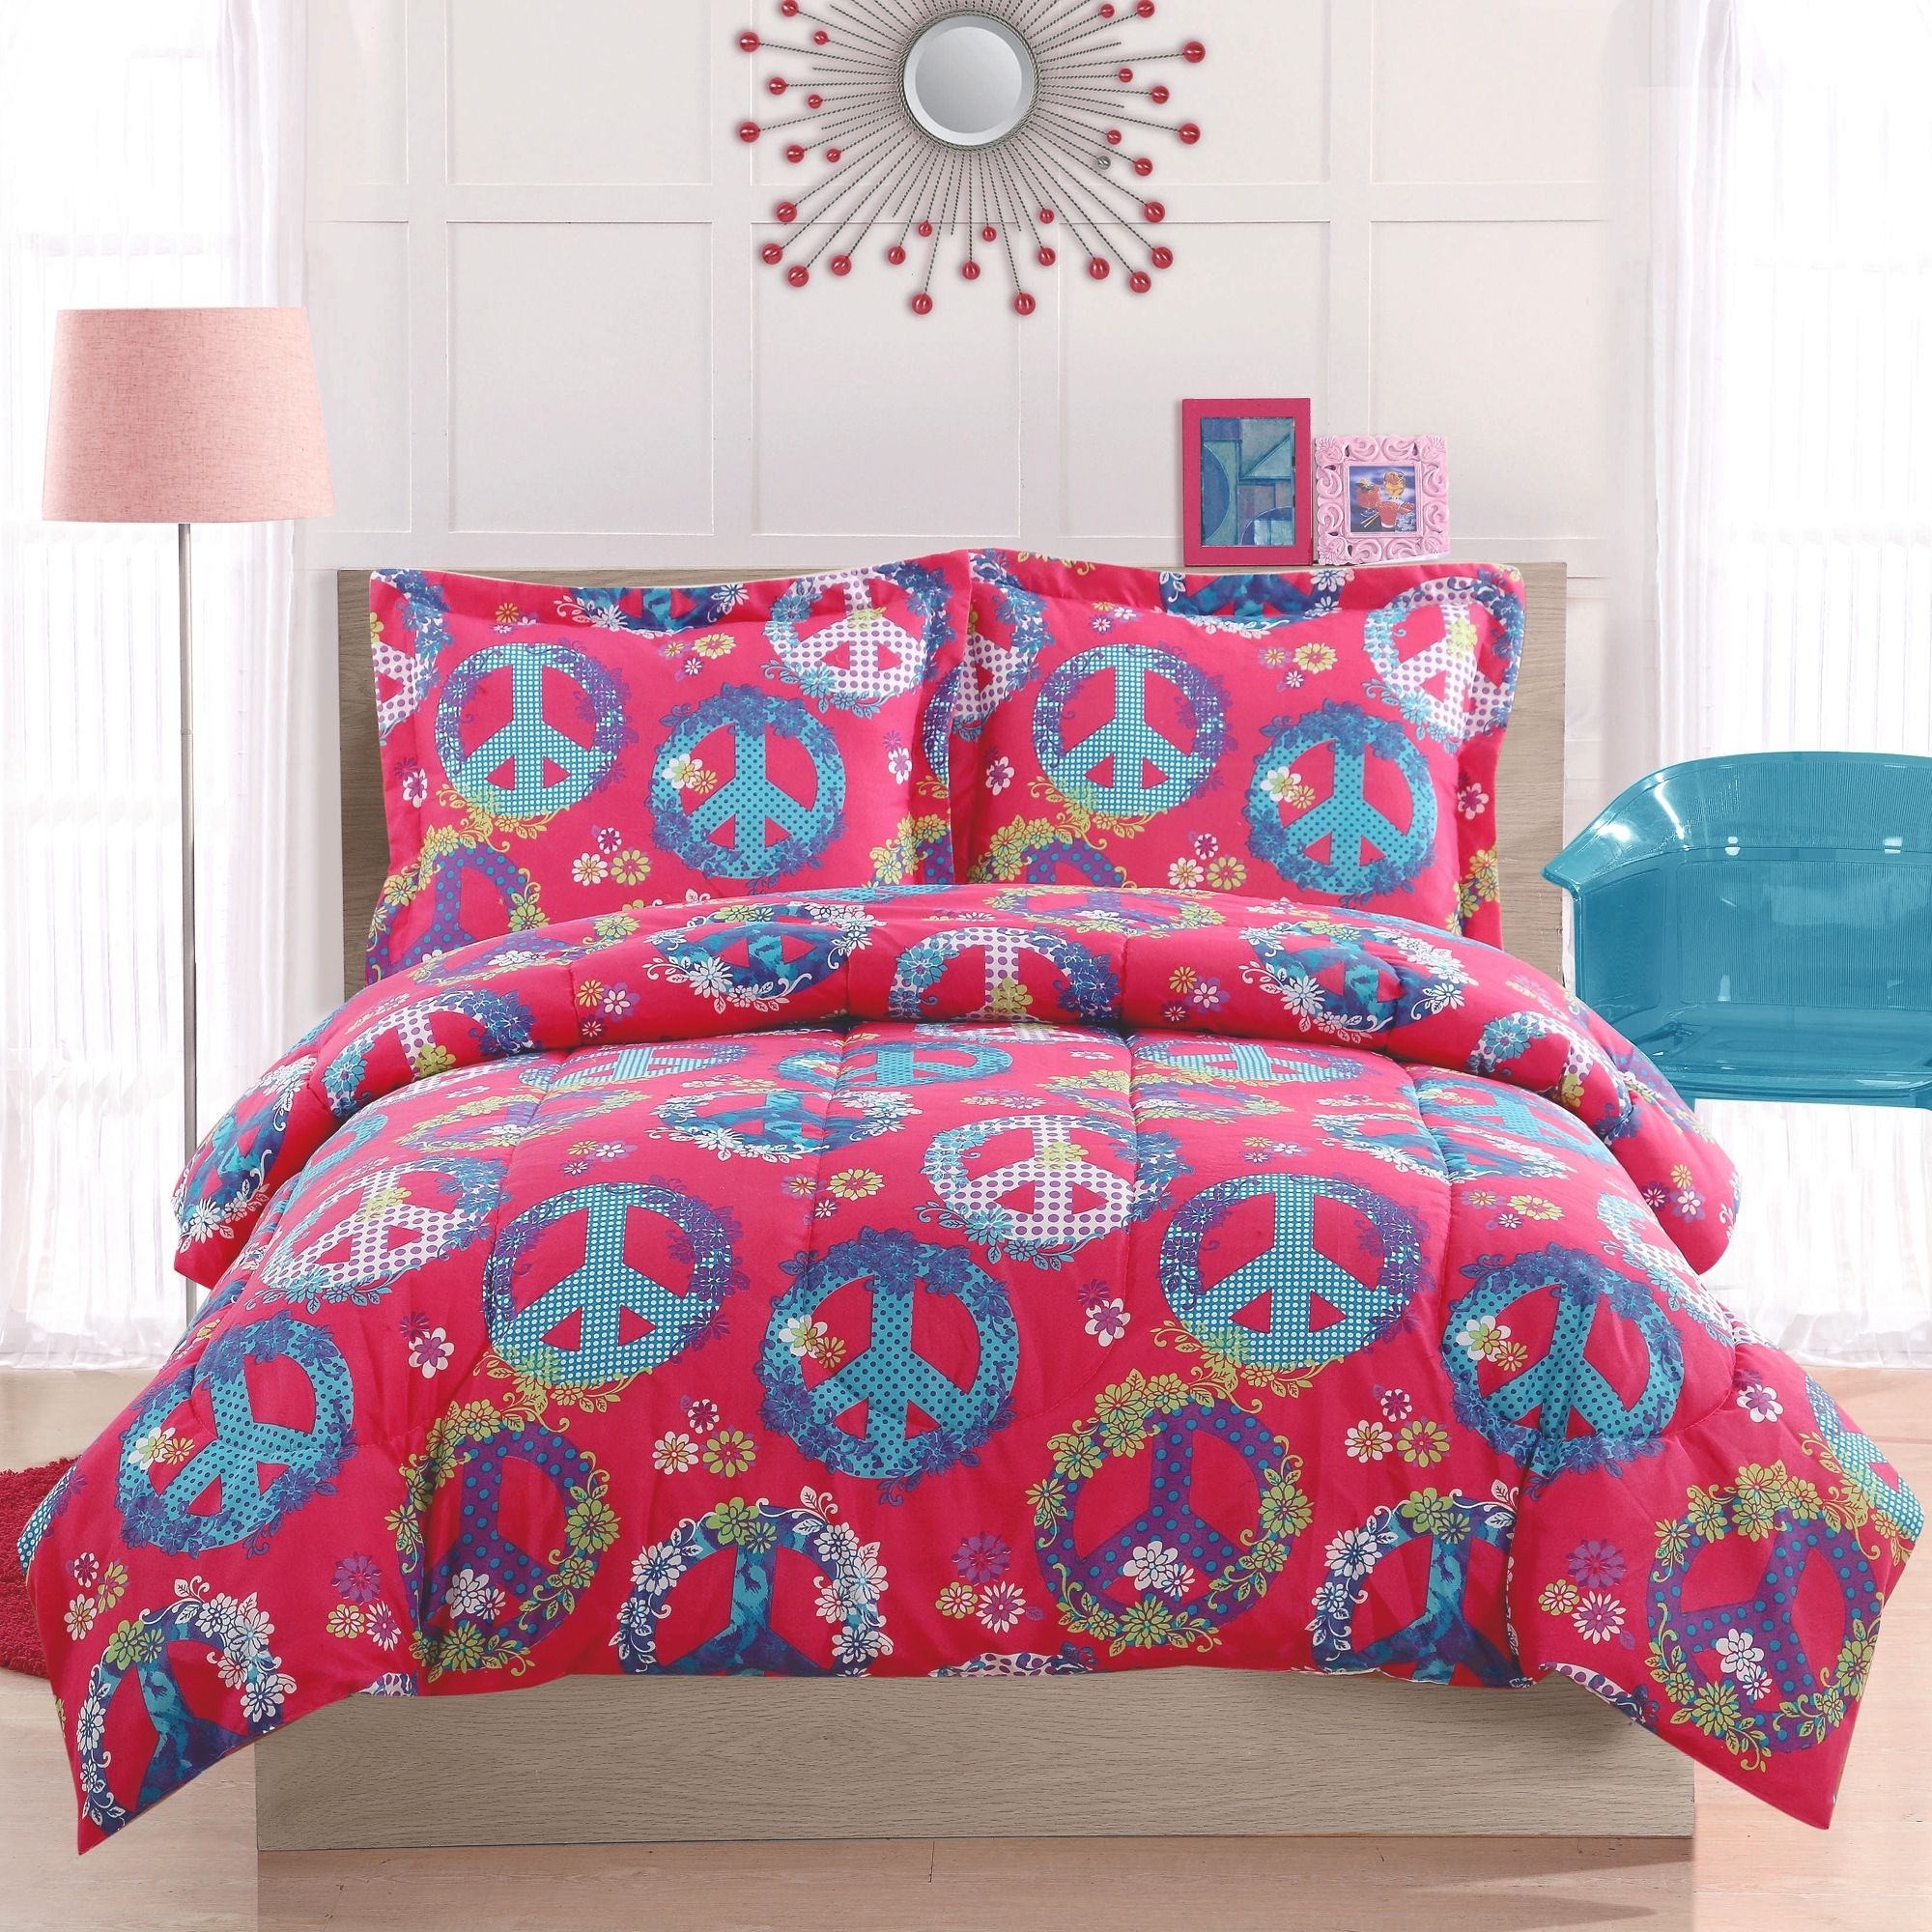 Bedding sets for teenage girls walmart - Cosmo Girl Peace Sign Pink Comforter Set Teen Girls Peace Sign Bedding Little Girls